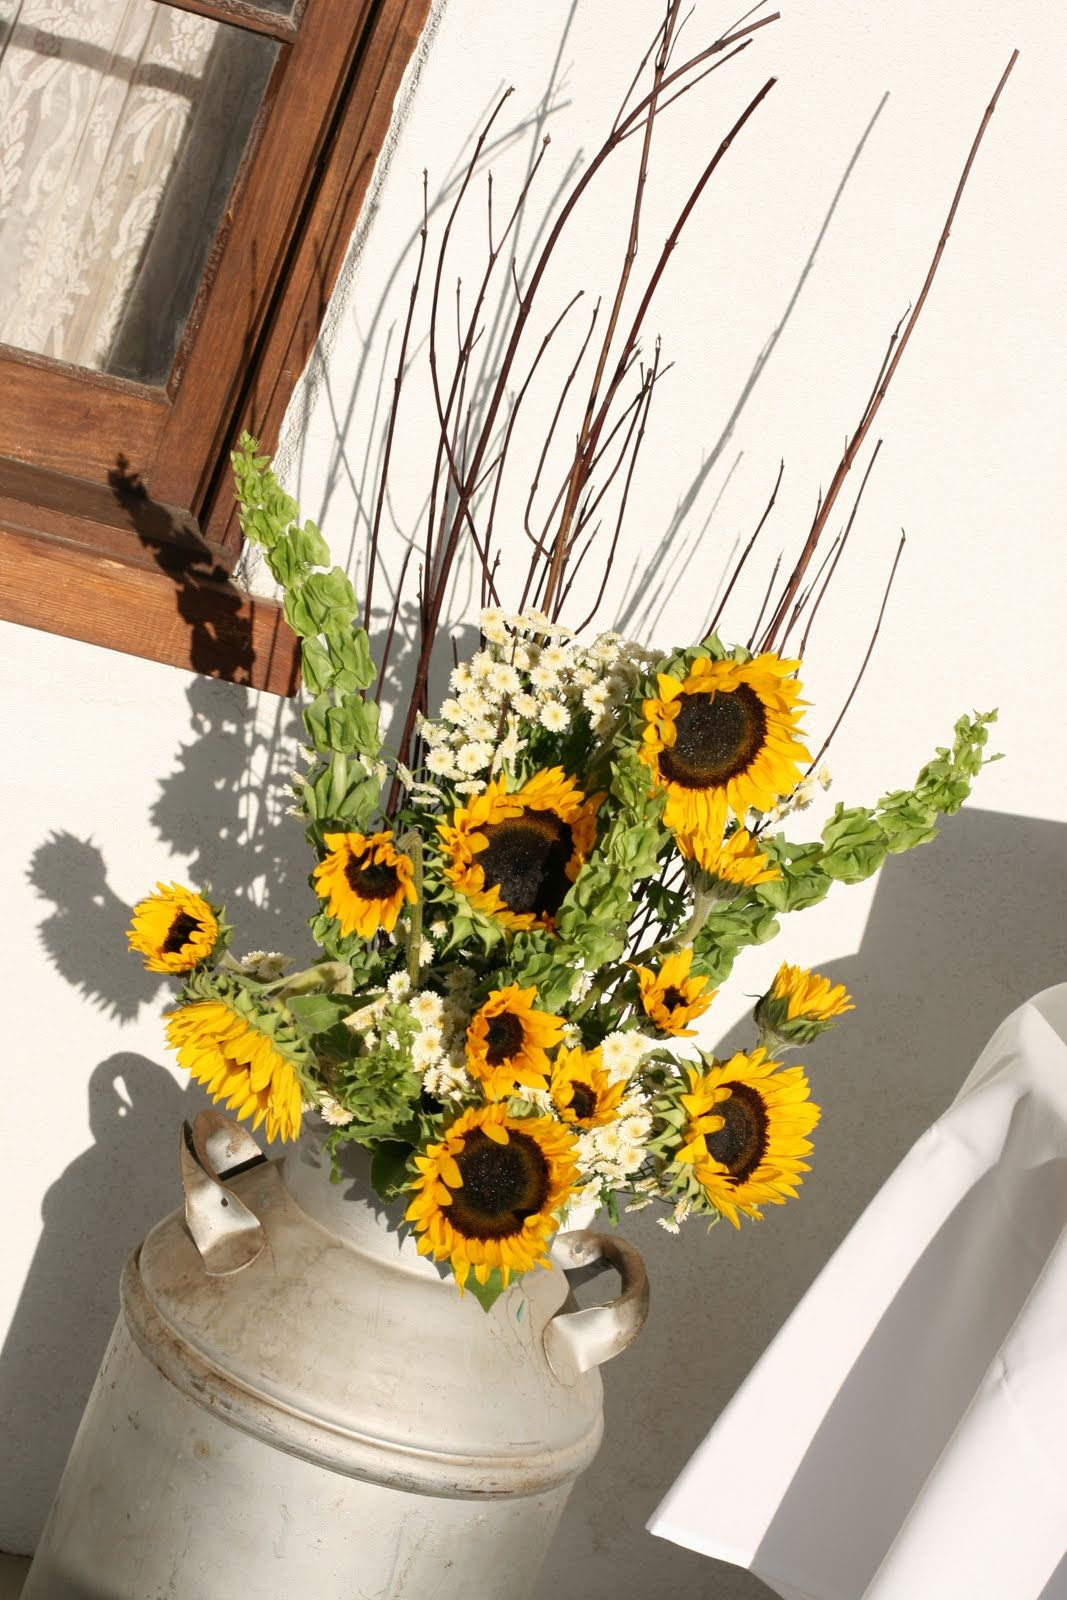 August wedding sunflowers or daisies perfection for a country